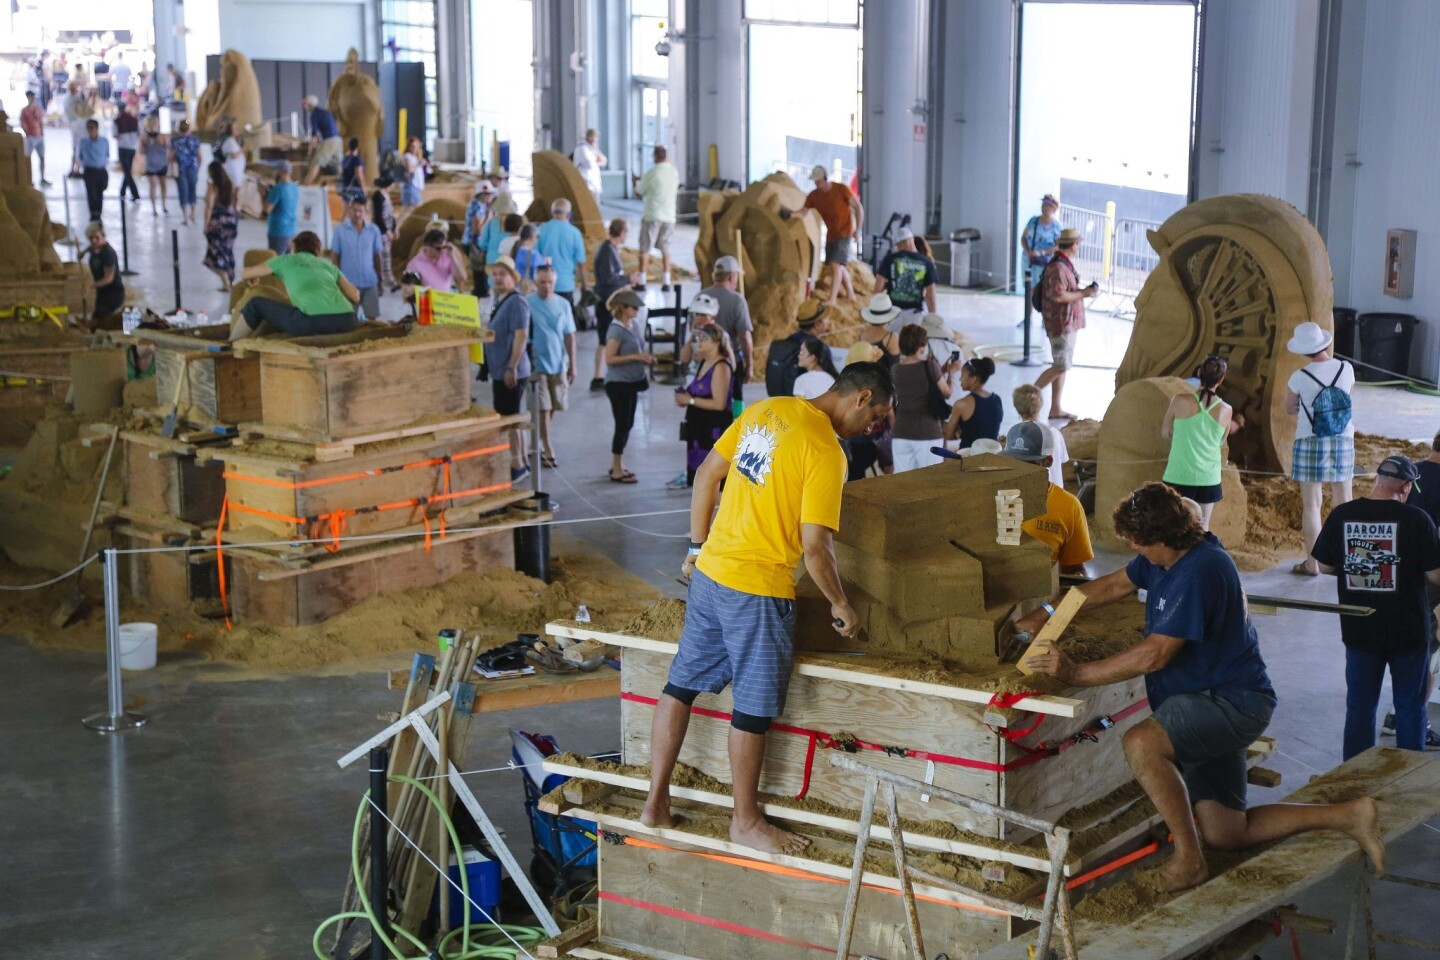 Entrants in the 3 Person Team and World Master Solo divisions are hard at work during preparing their entries during the U.S. San Sculpting Challenge and Dimensional Art Exposition at the Broadway Pier. (Howard Lipin/San Diego Union-Tribune)